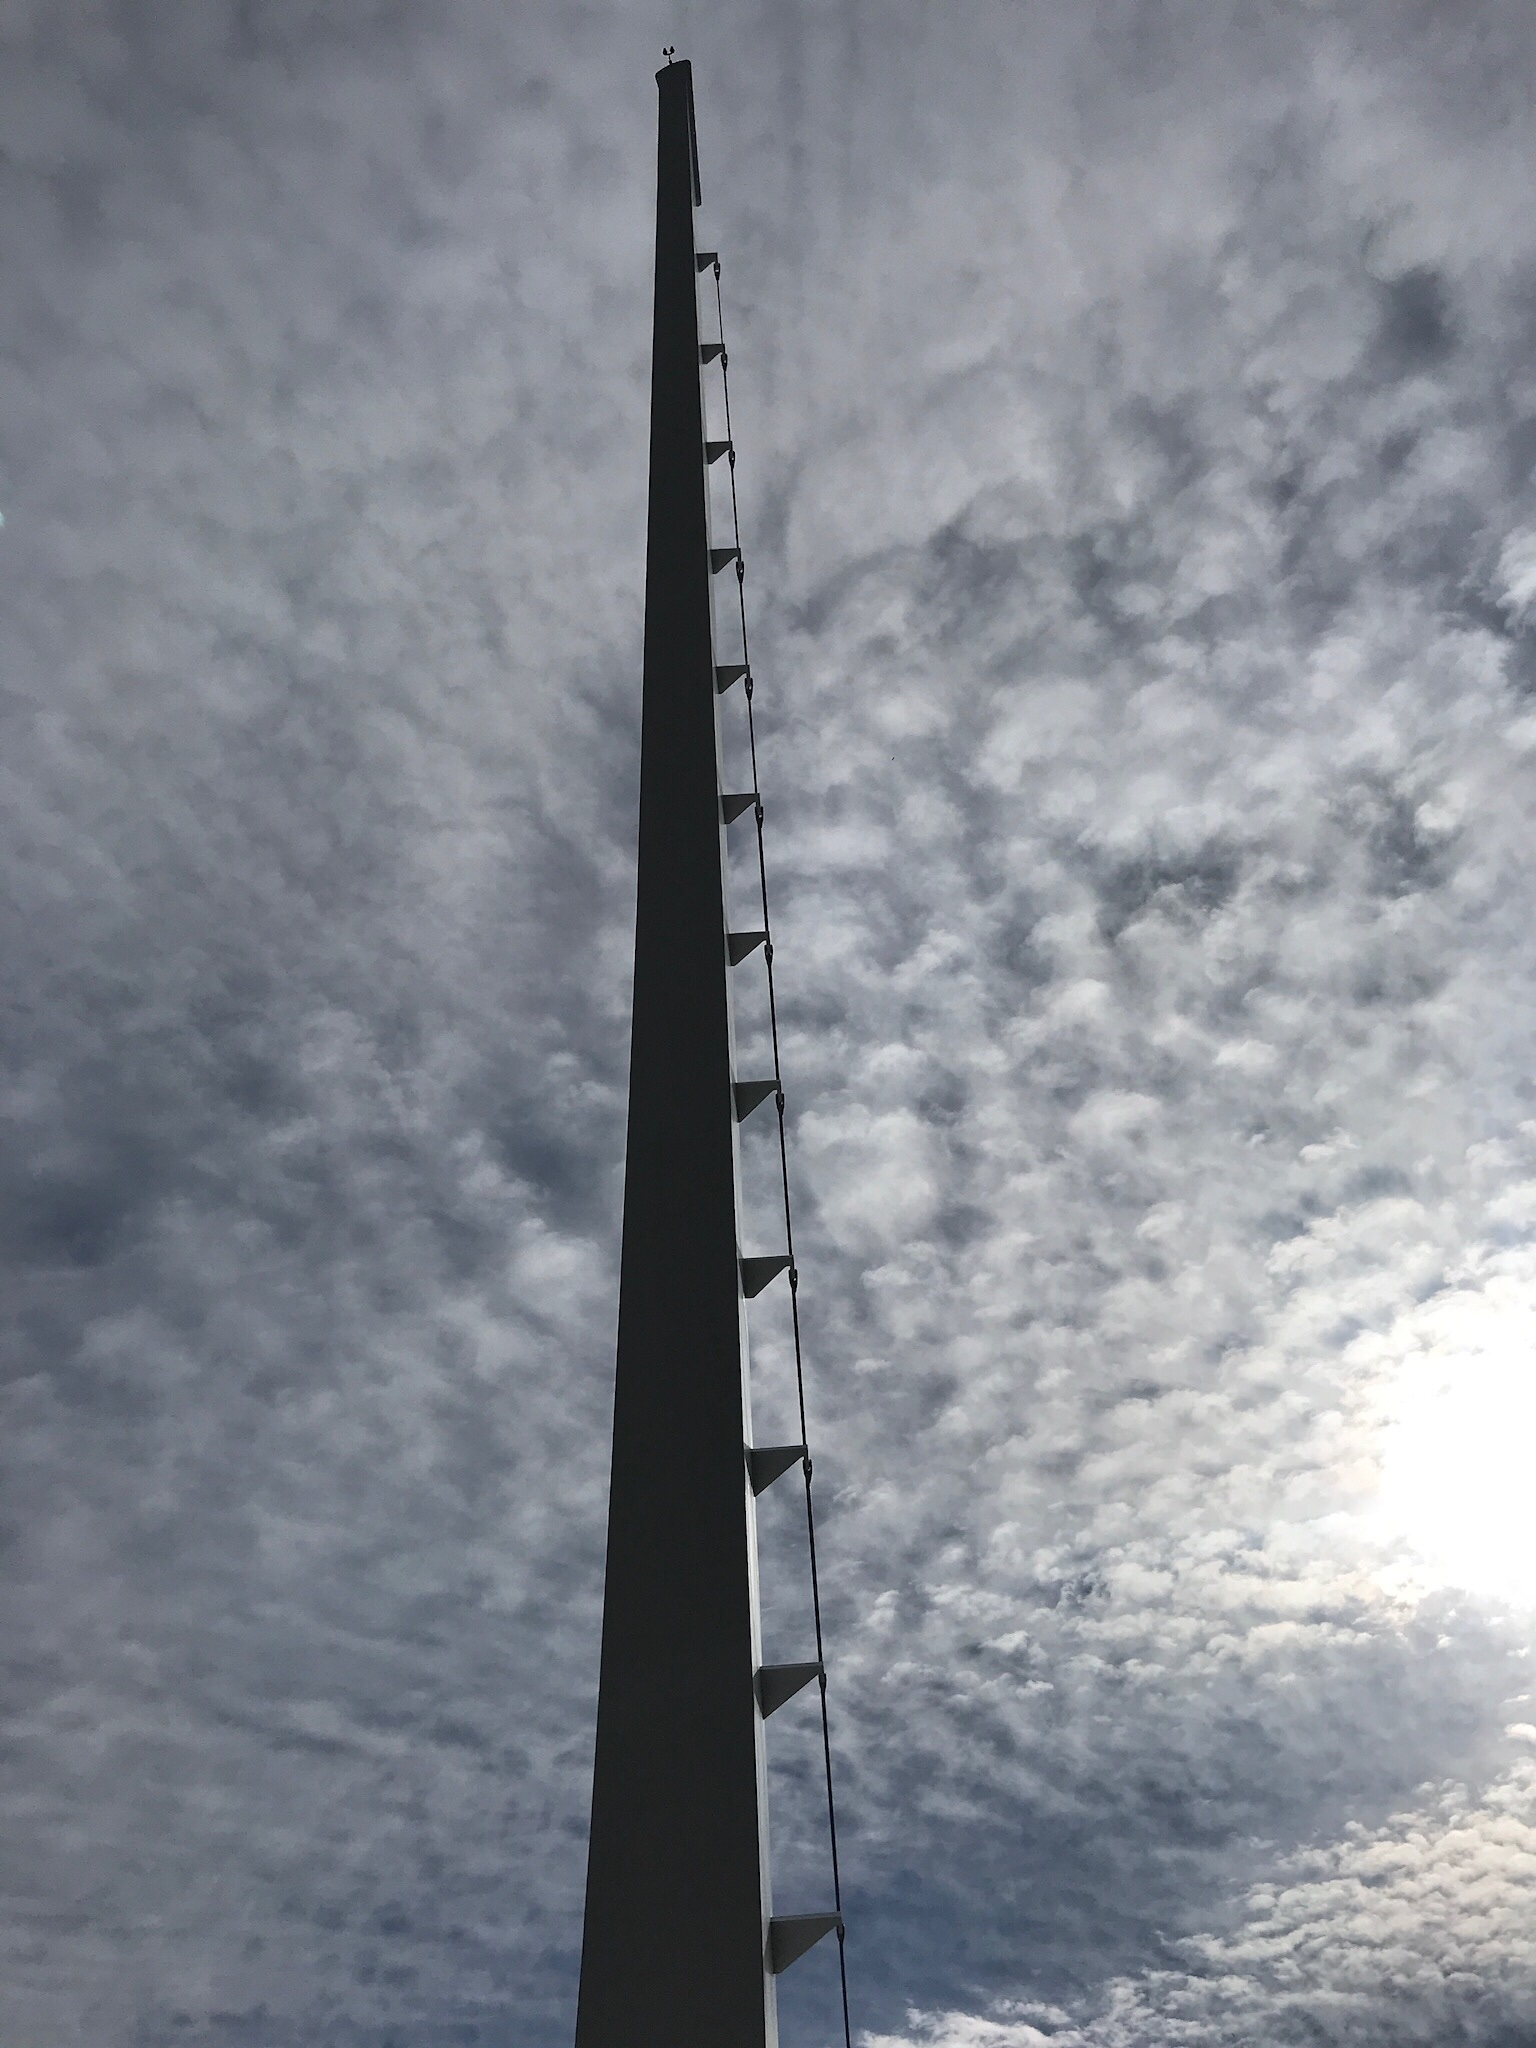 The tower at the Sundial Bridge.